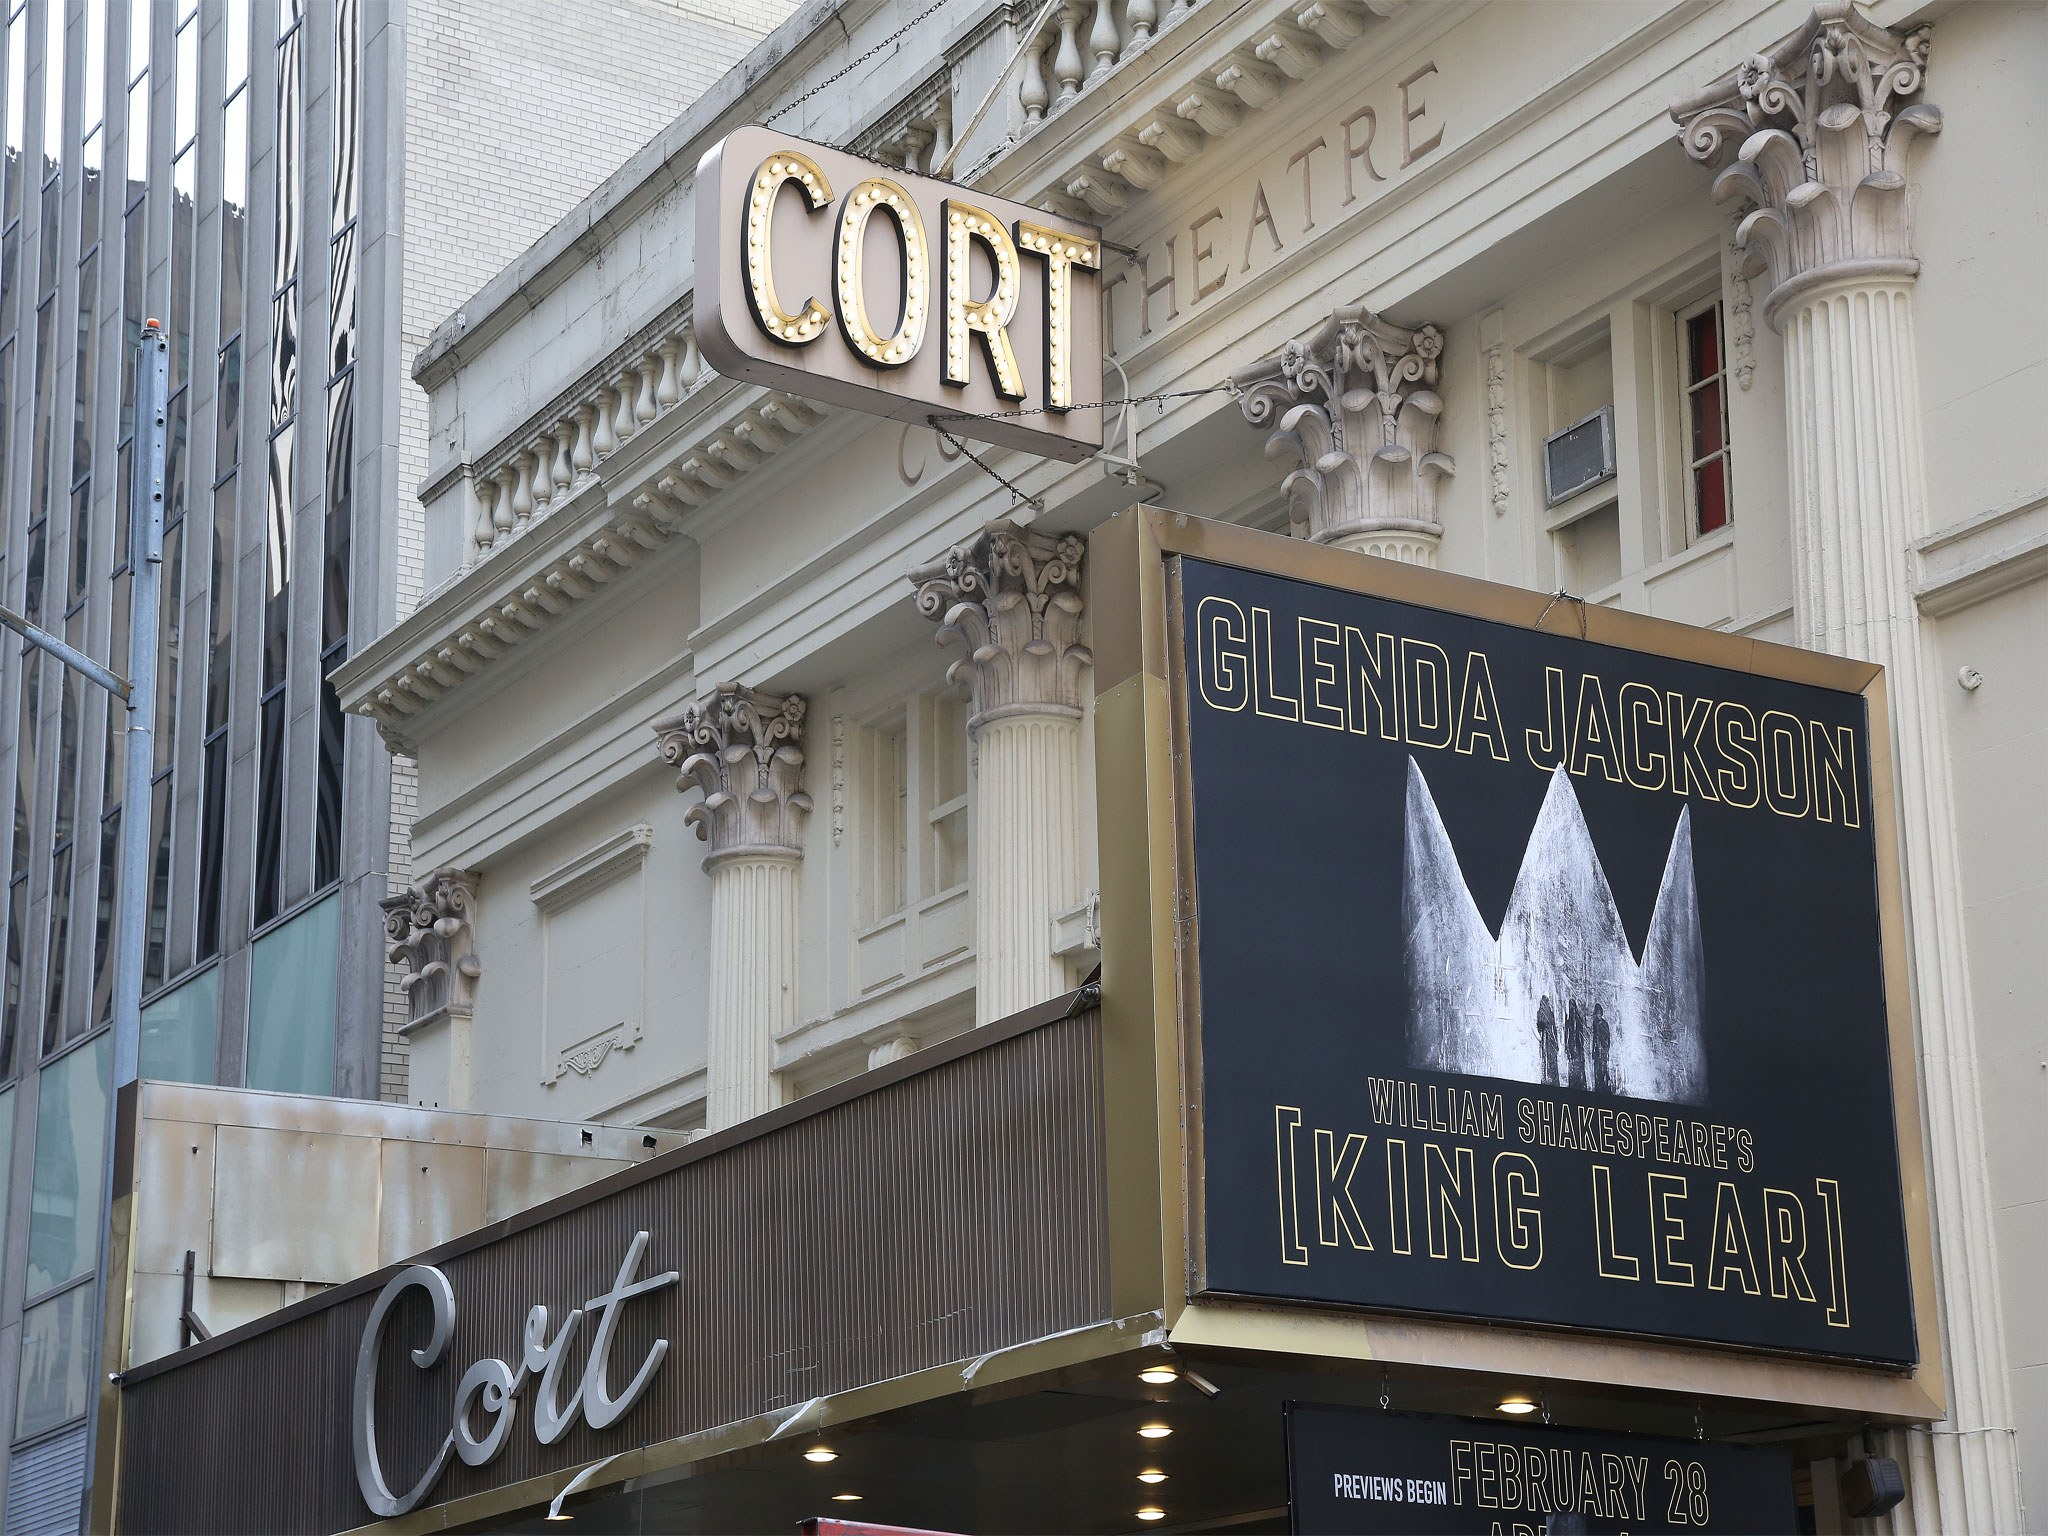 King Lear Cor Theatre Marquee